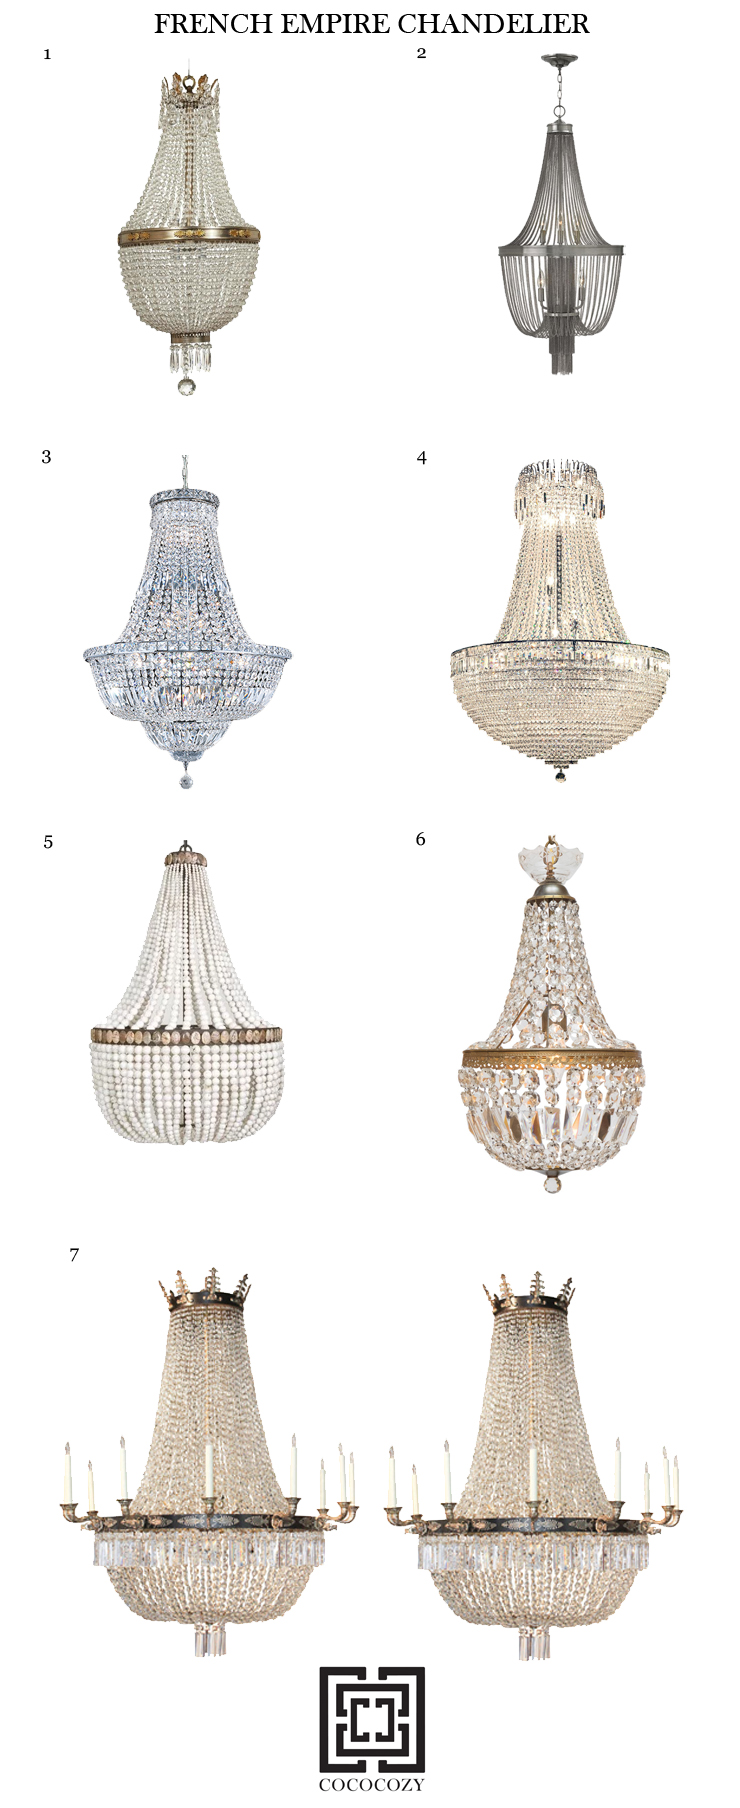 9 elegant french empire chandeliers cococozy french empire chandelier aloadofball Gallery